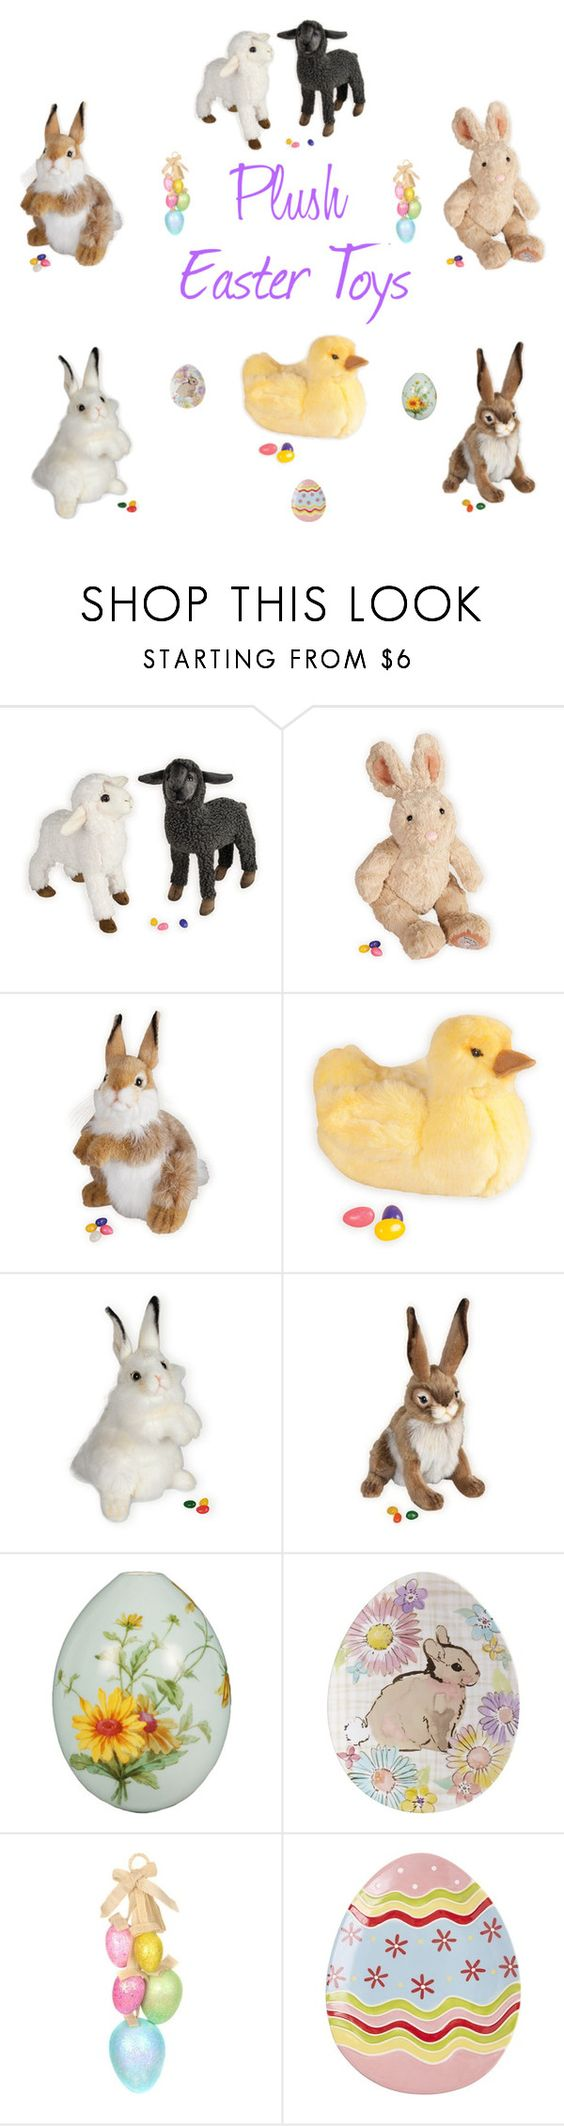 """""""Plush Easter Toys"""" by woodensoldier on Polyvore featuring Pier 1 Imports"""